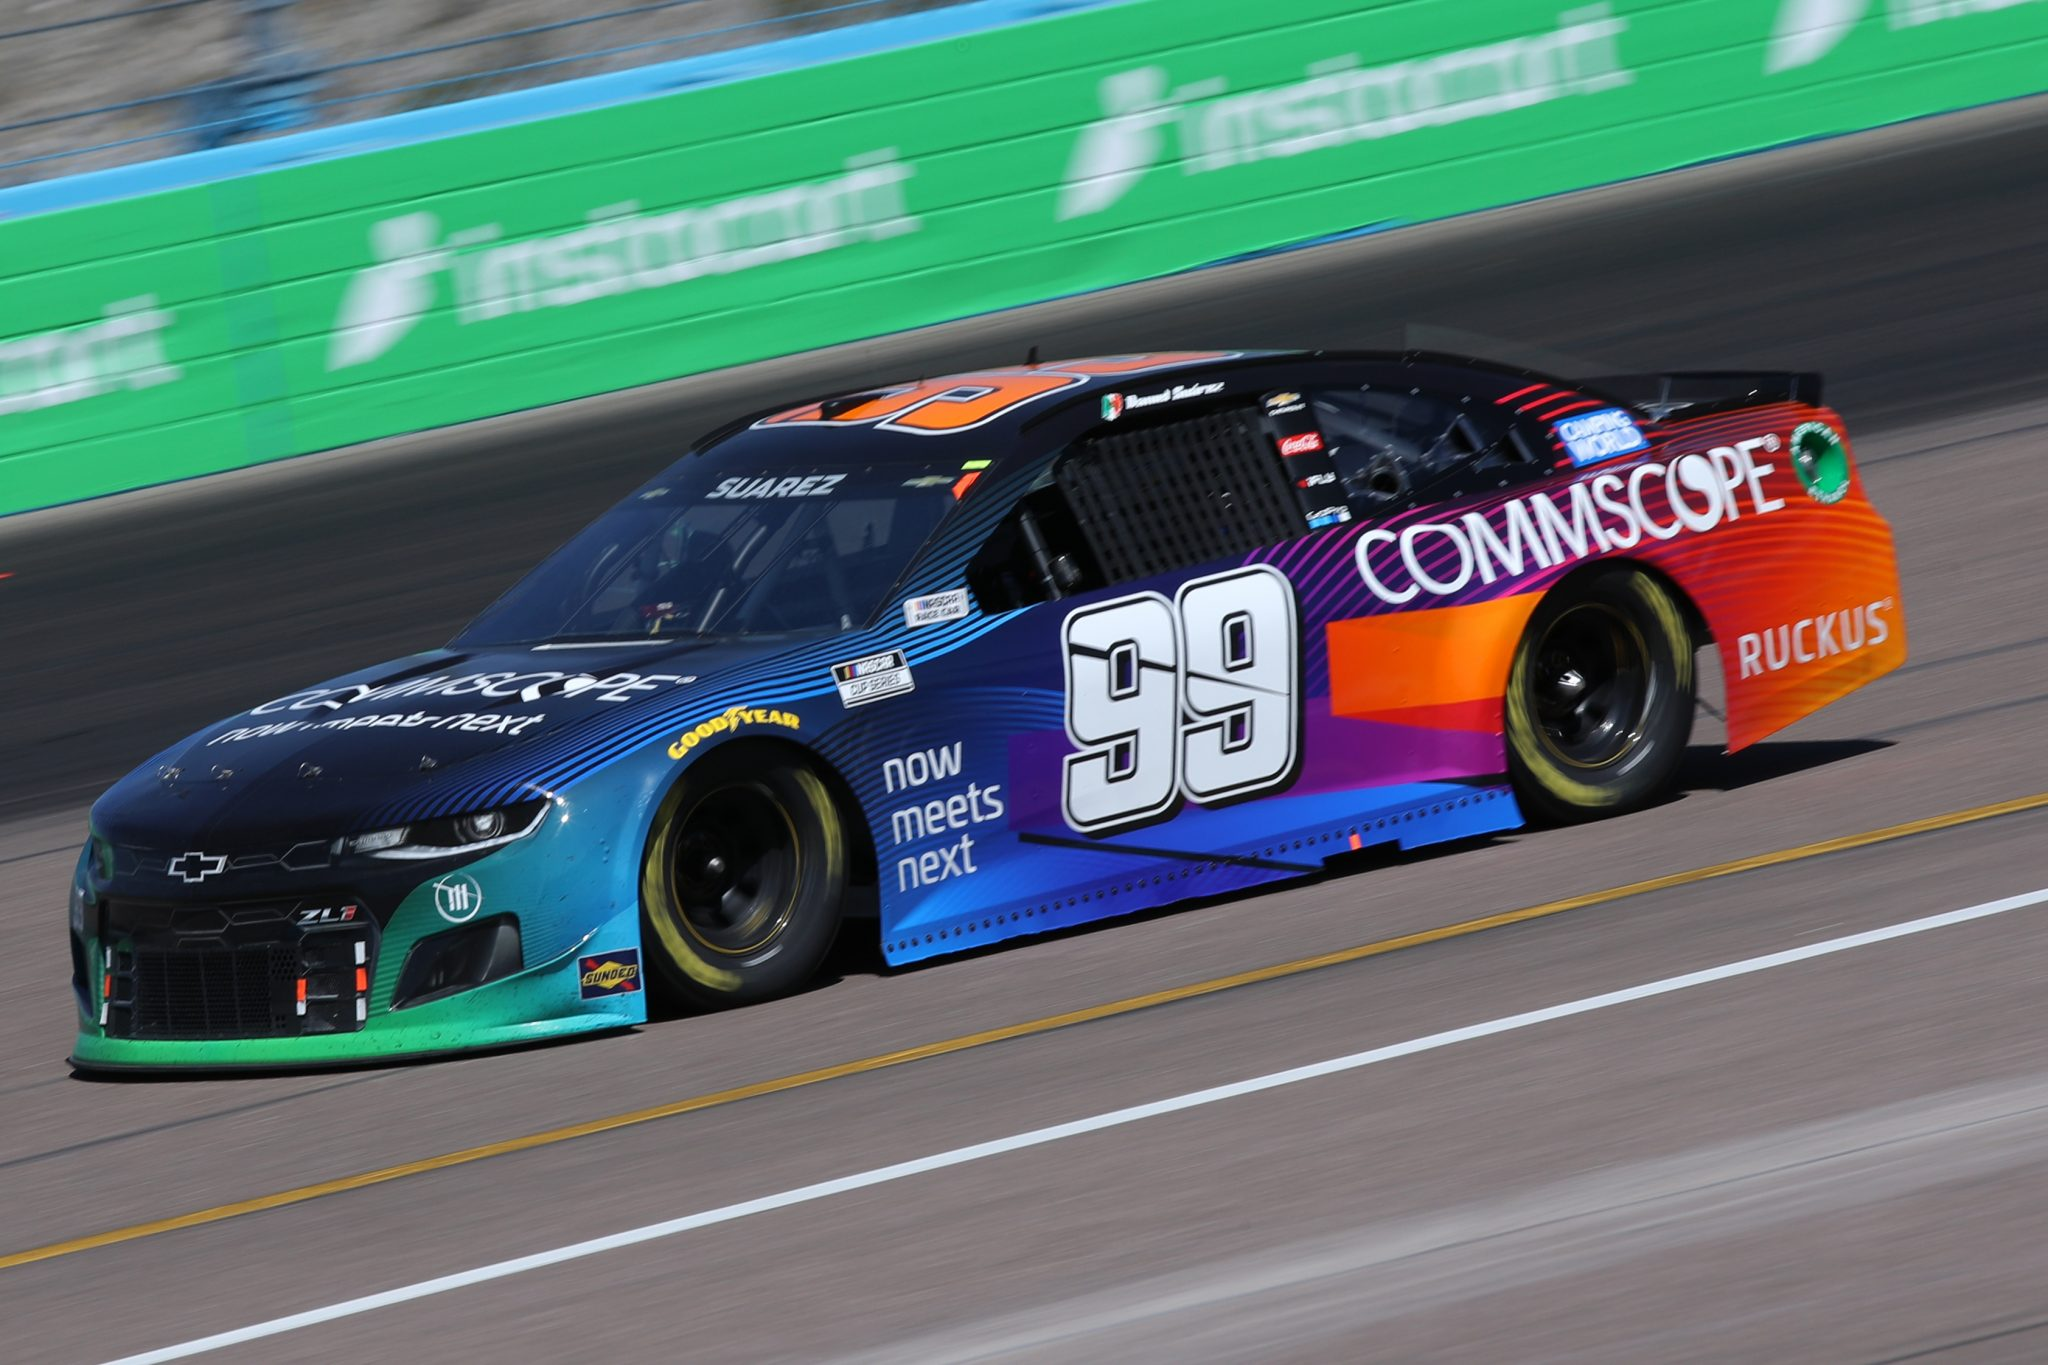 AVONDALE, ARIZONA - MARCH 14: Daniel Suarez, driver of the #99 CommScope Chevrolet, drives during the NASCAR Cup Series Instacart 500 at Phoenix Raceway on March 14, 2021 in Avondale, Arizona. (Photo by Sean Gardner/Getty Images) | Getty Images